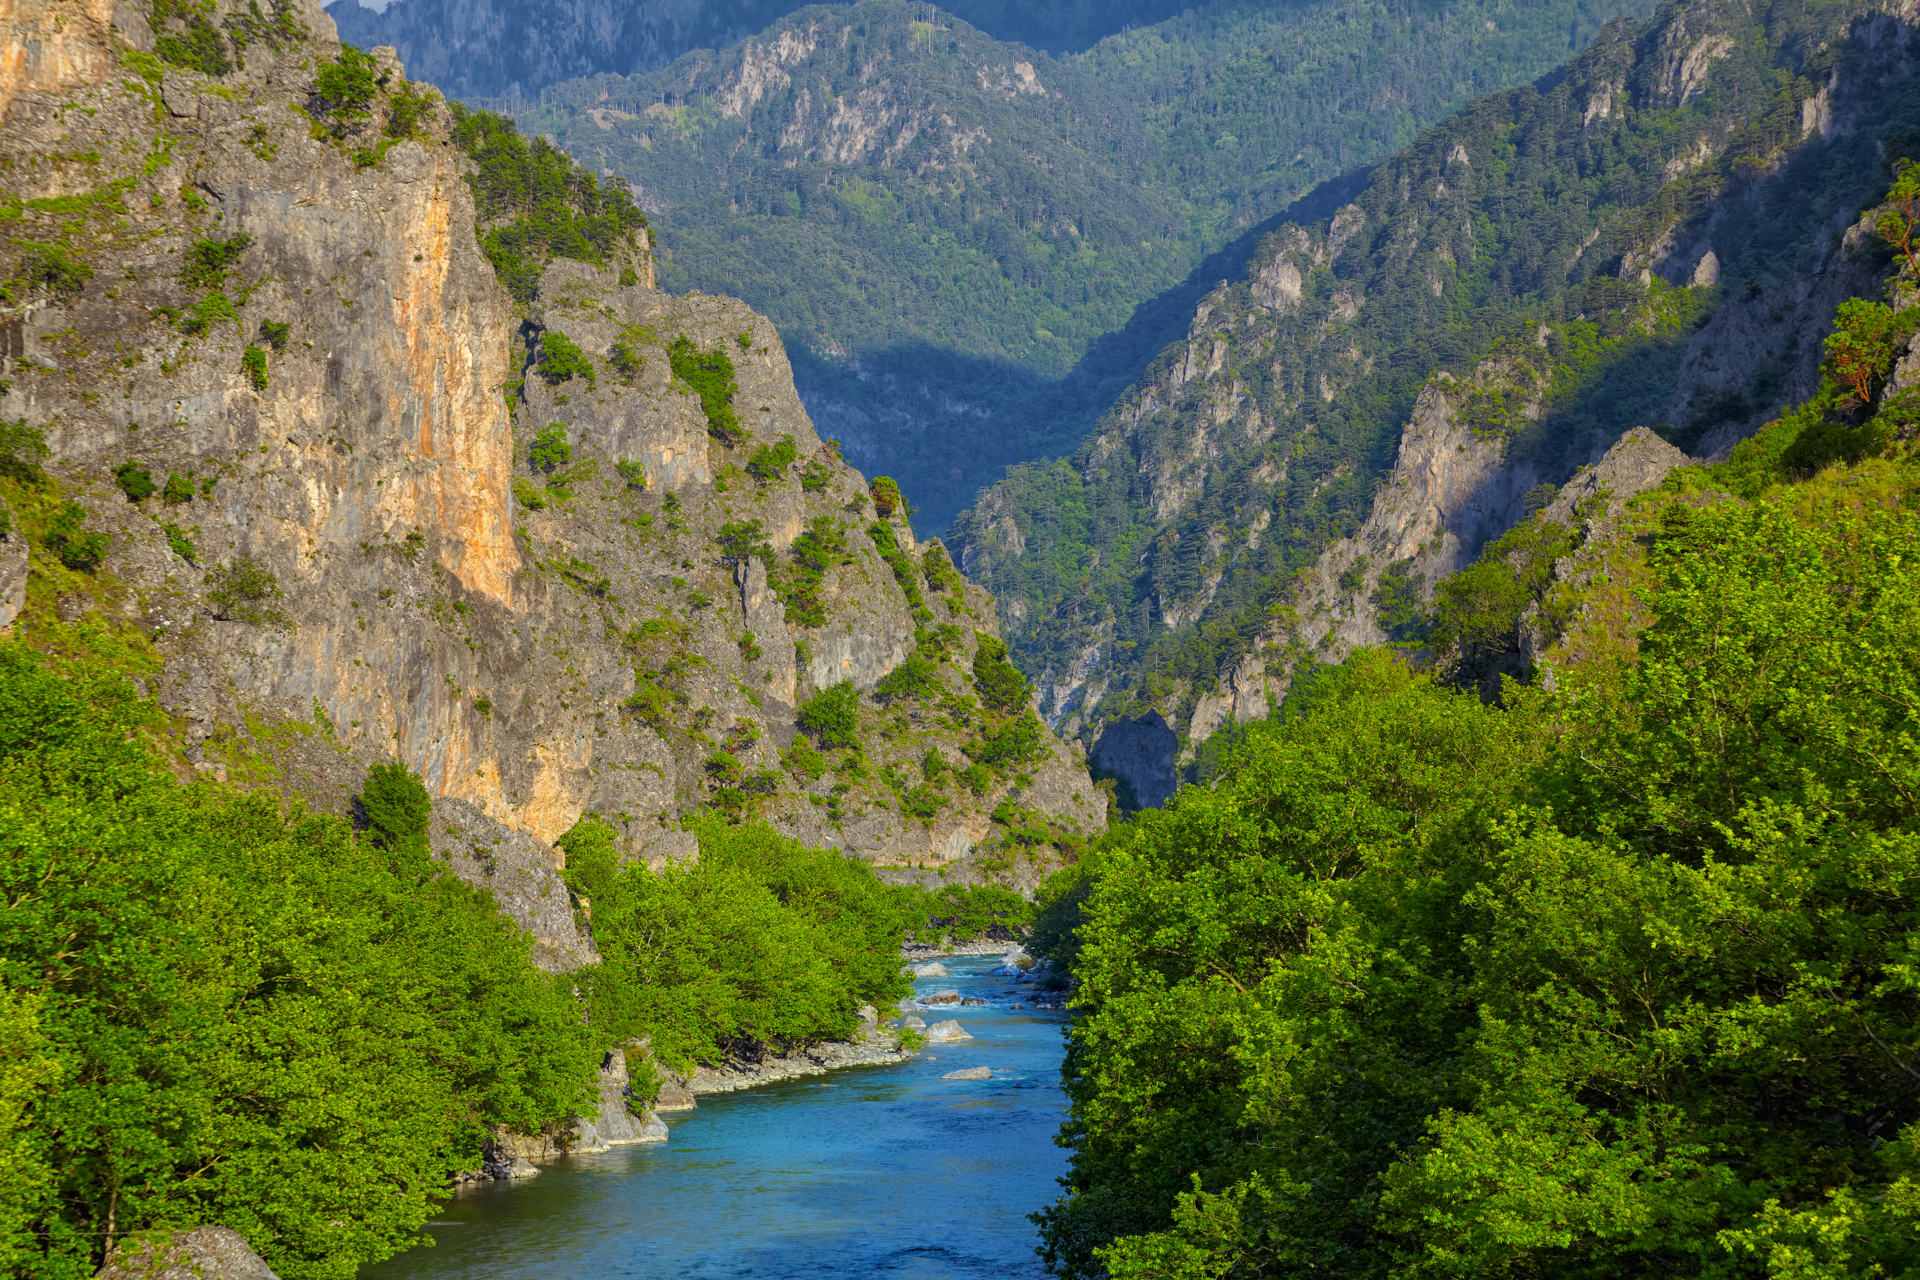 Aoos river near Konitsa during summer, Greece